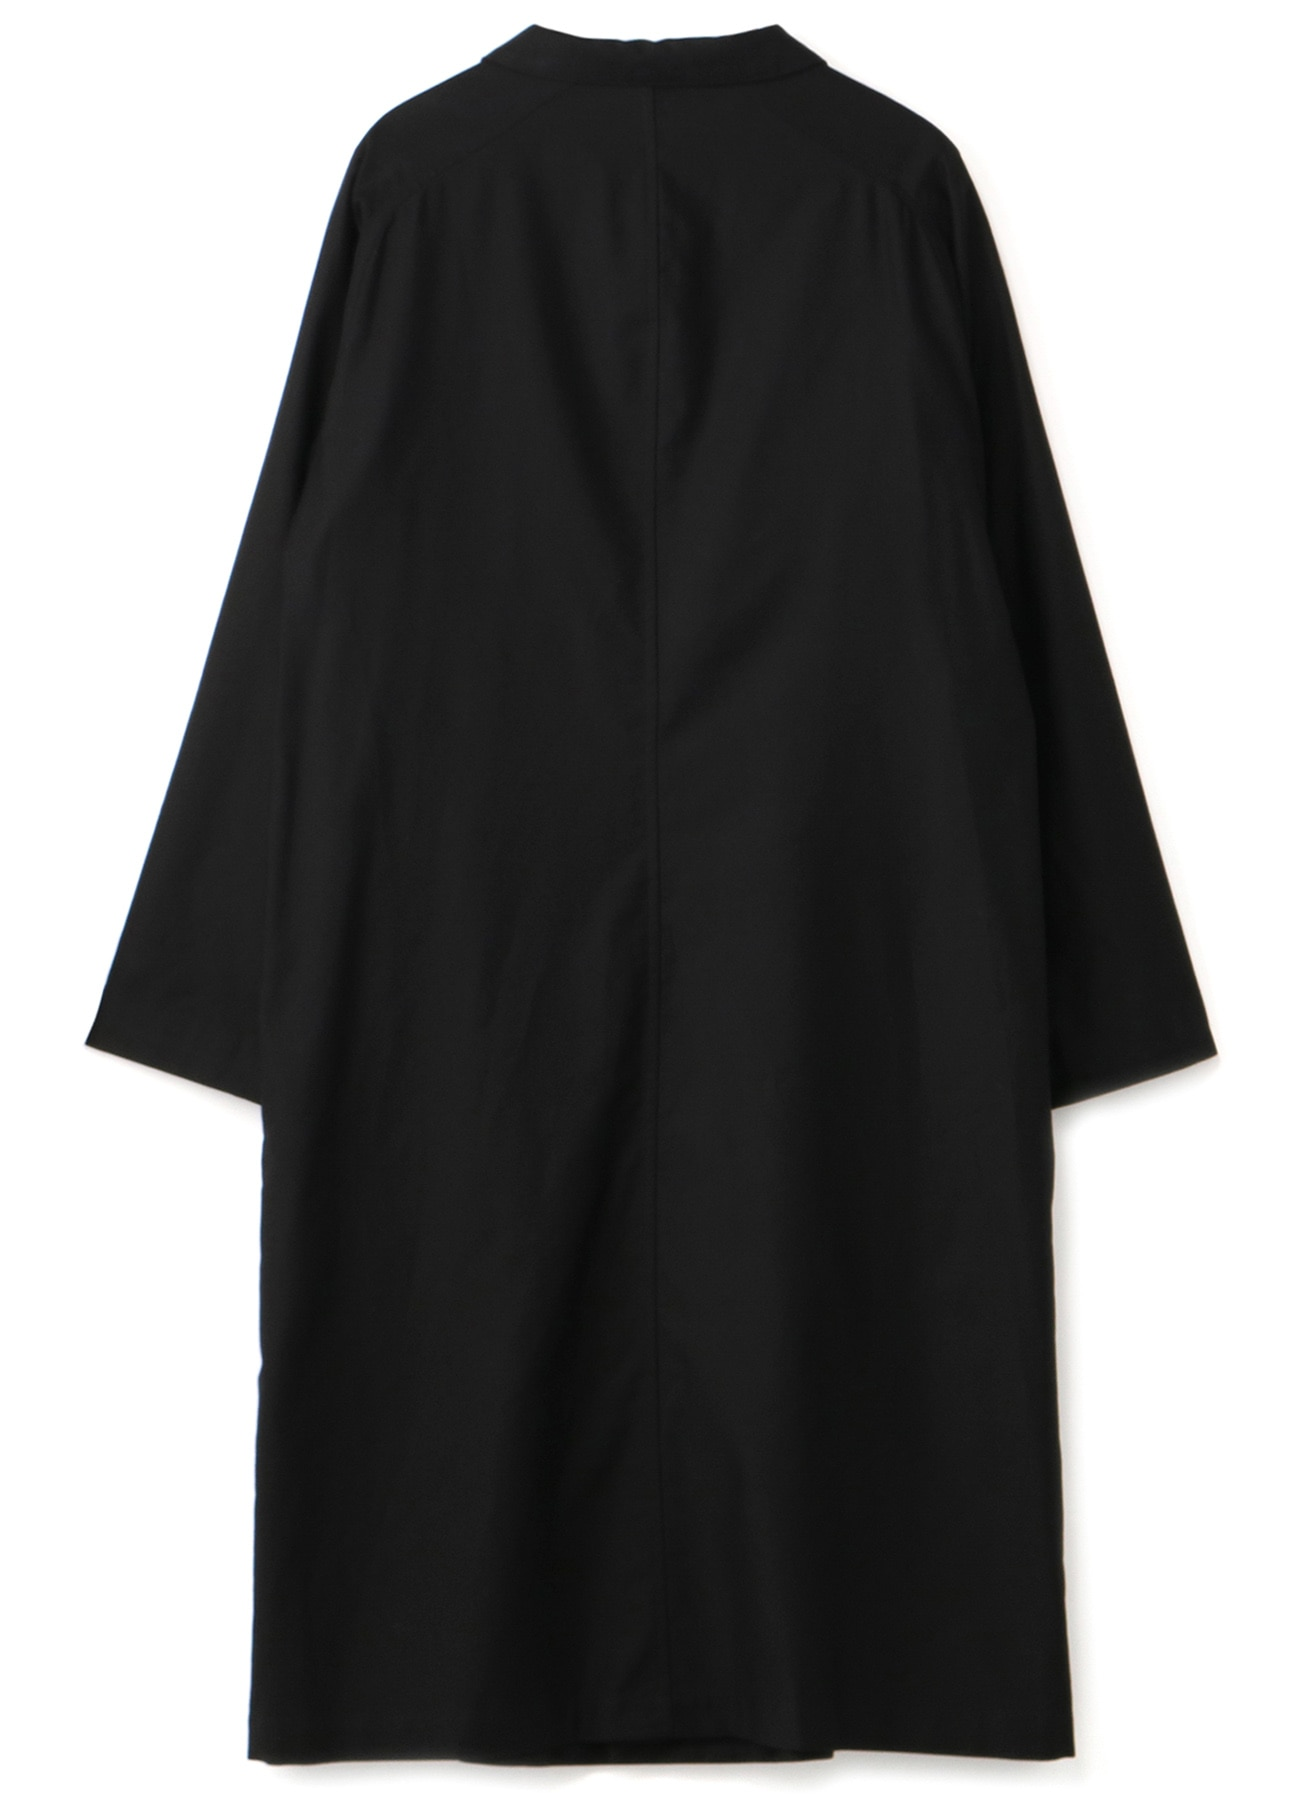 BLACK C/TWILL PARTS BUTTON RAGLAN DRESS